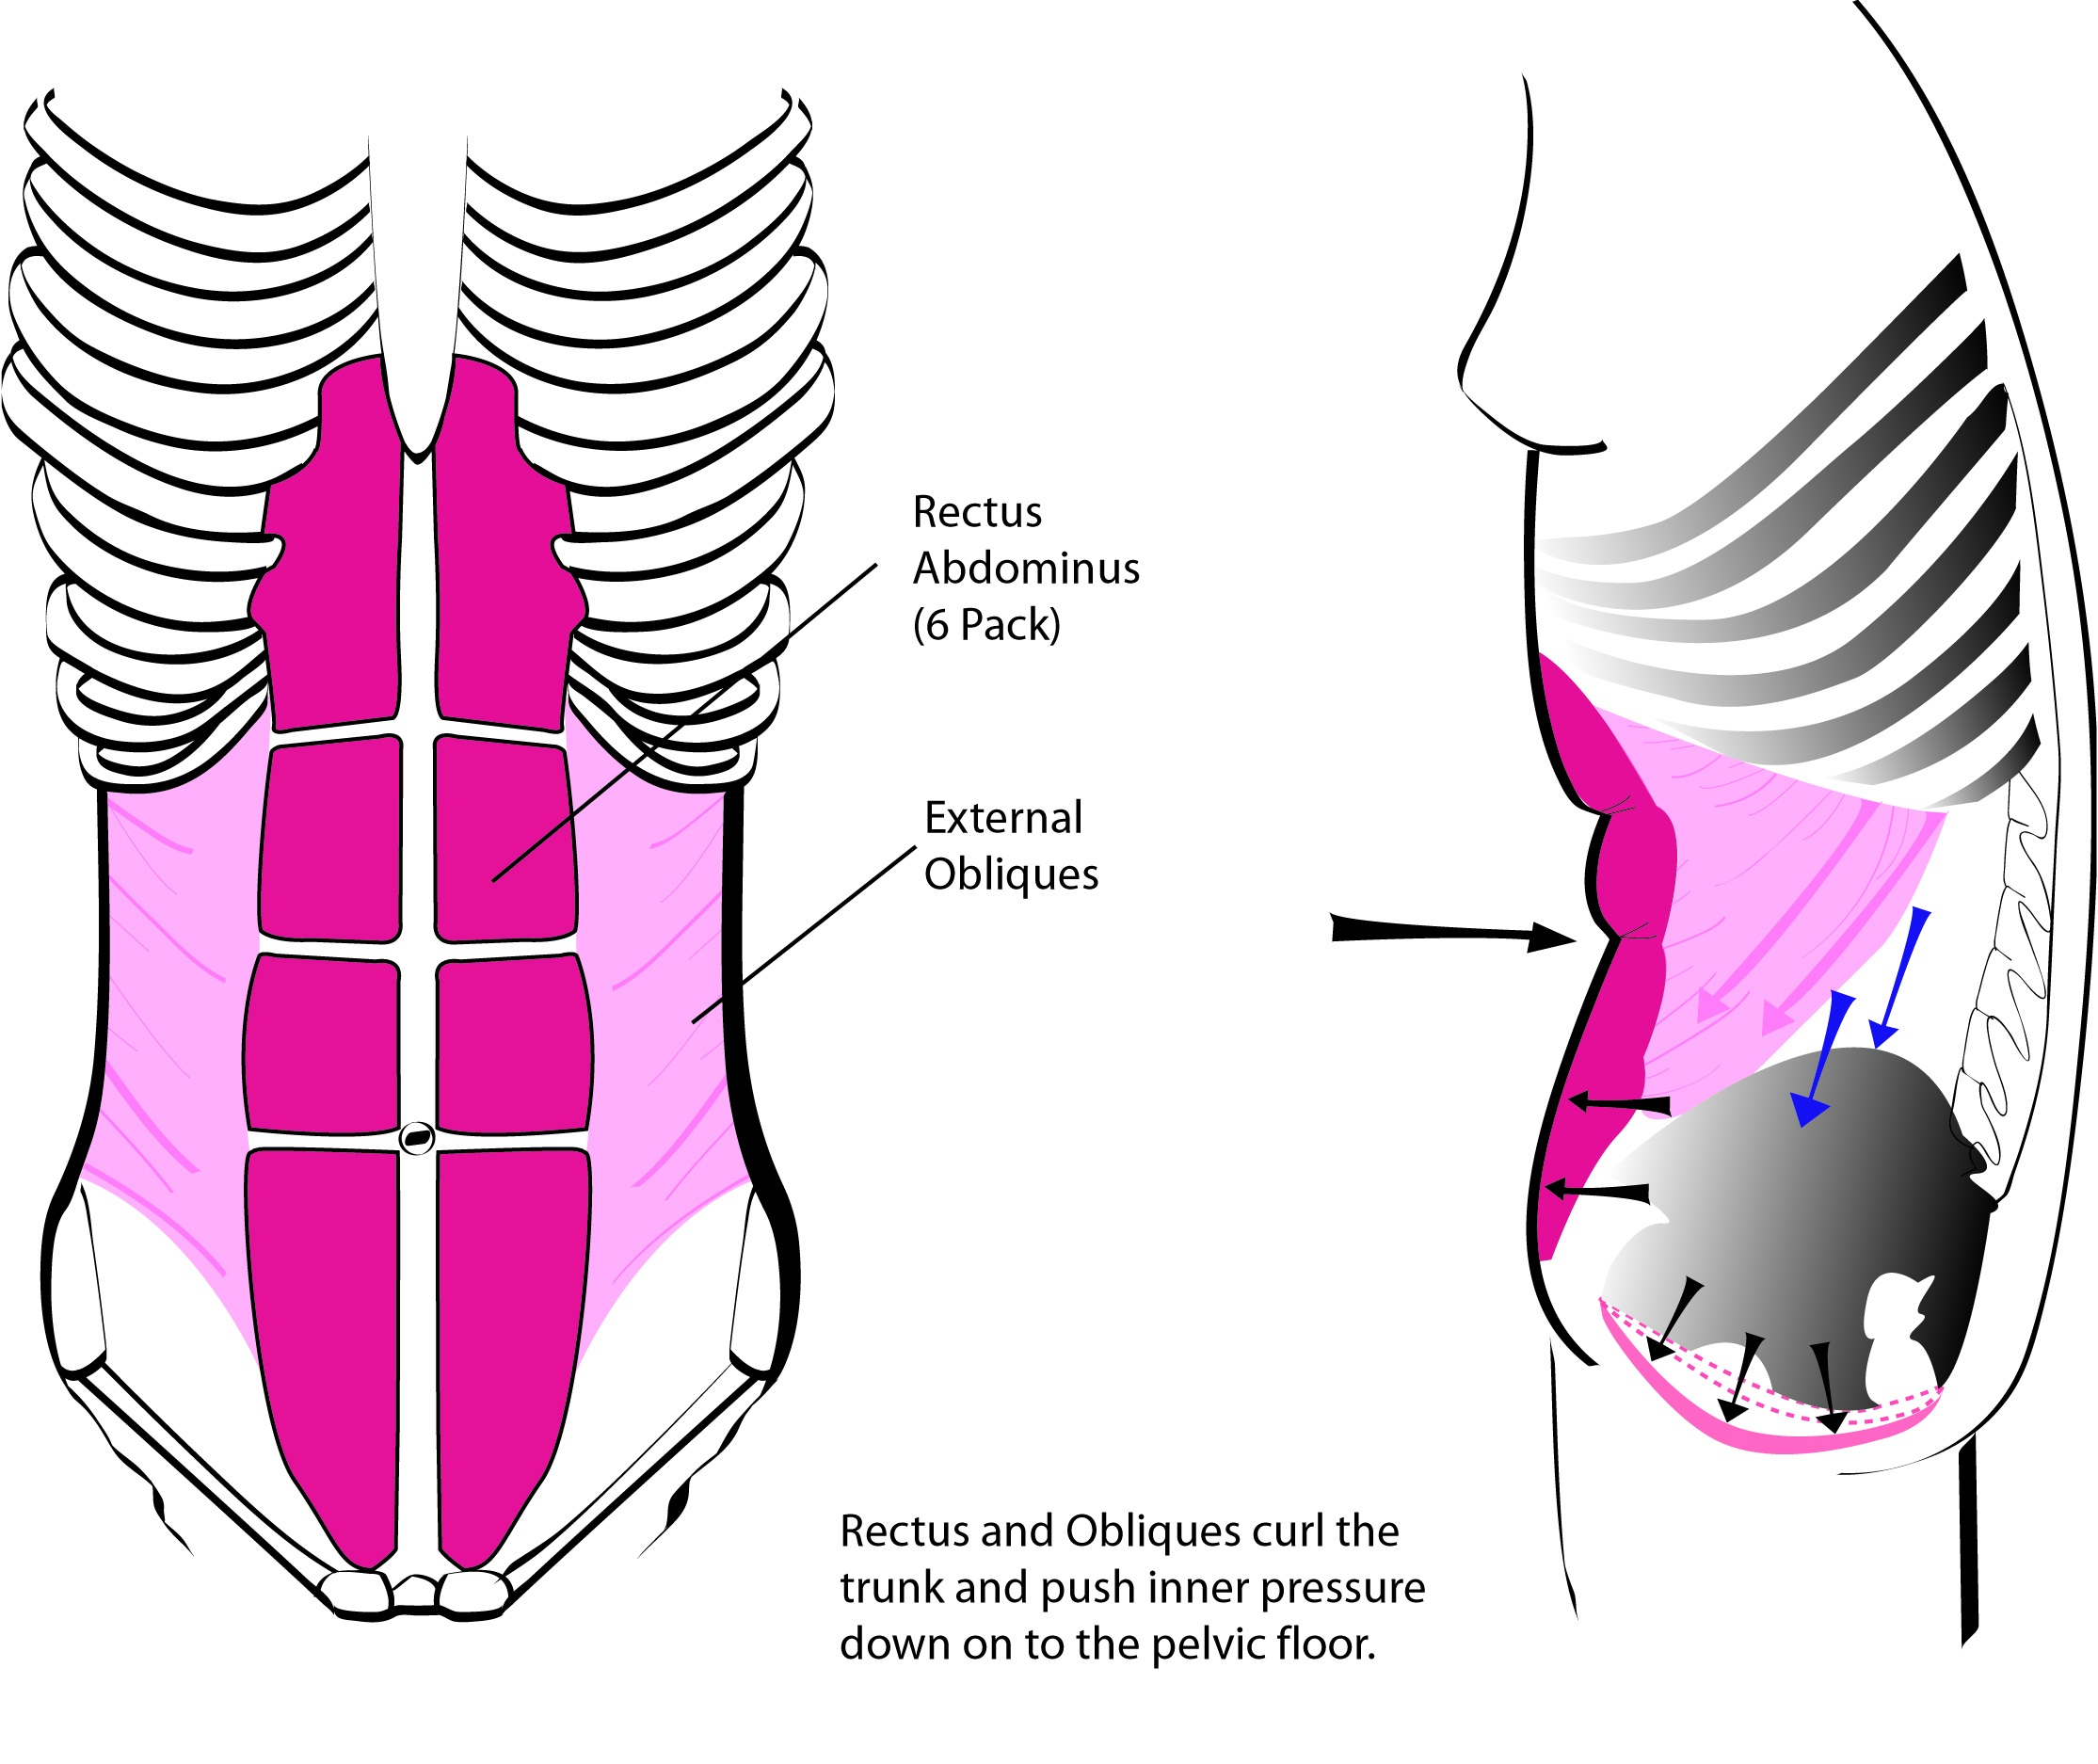 gynecology uterus diagram 2005 pt cruiser stereo wiring pubococcygeus muscle healthy solutions